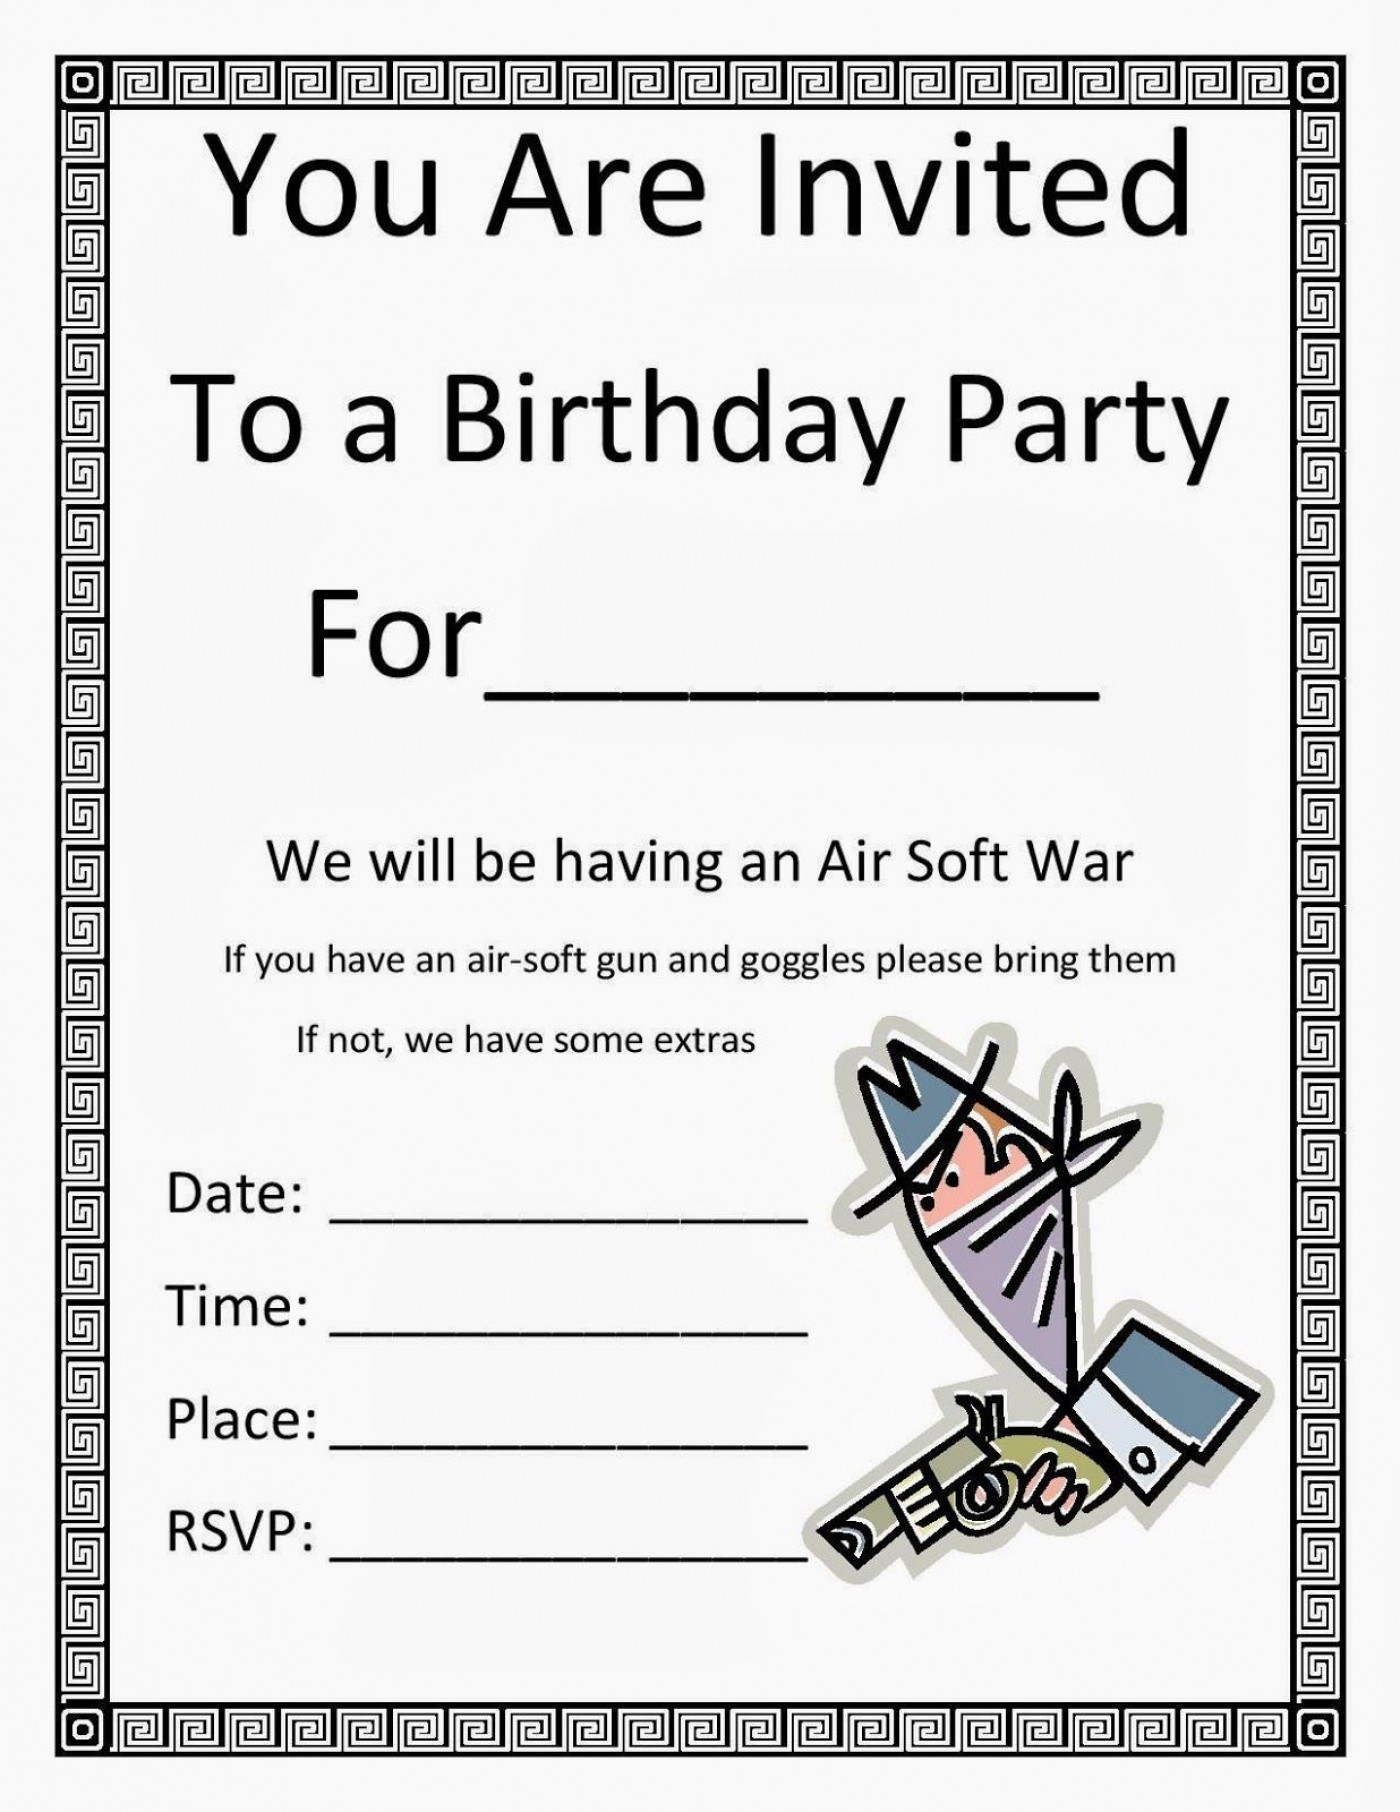 003 Exceptional Free Birthday Party Invitation Template For Word Sample 1400